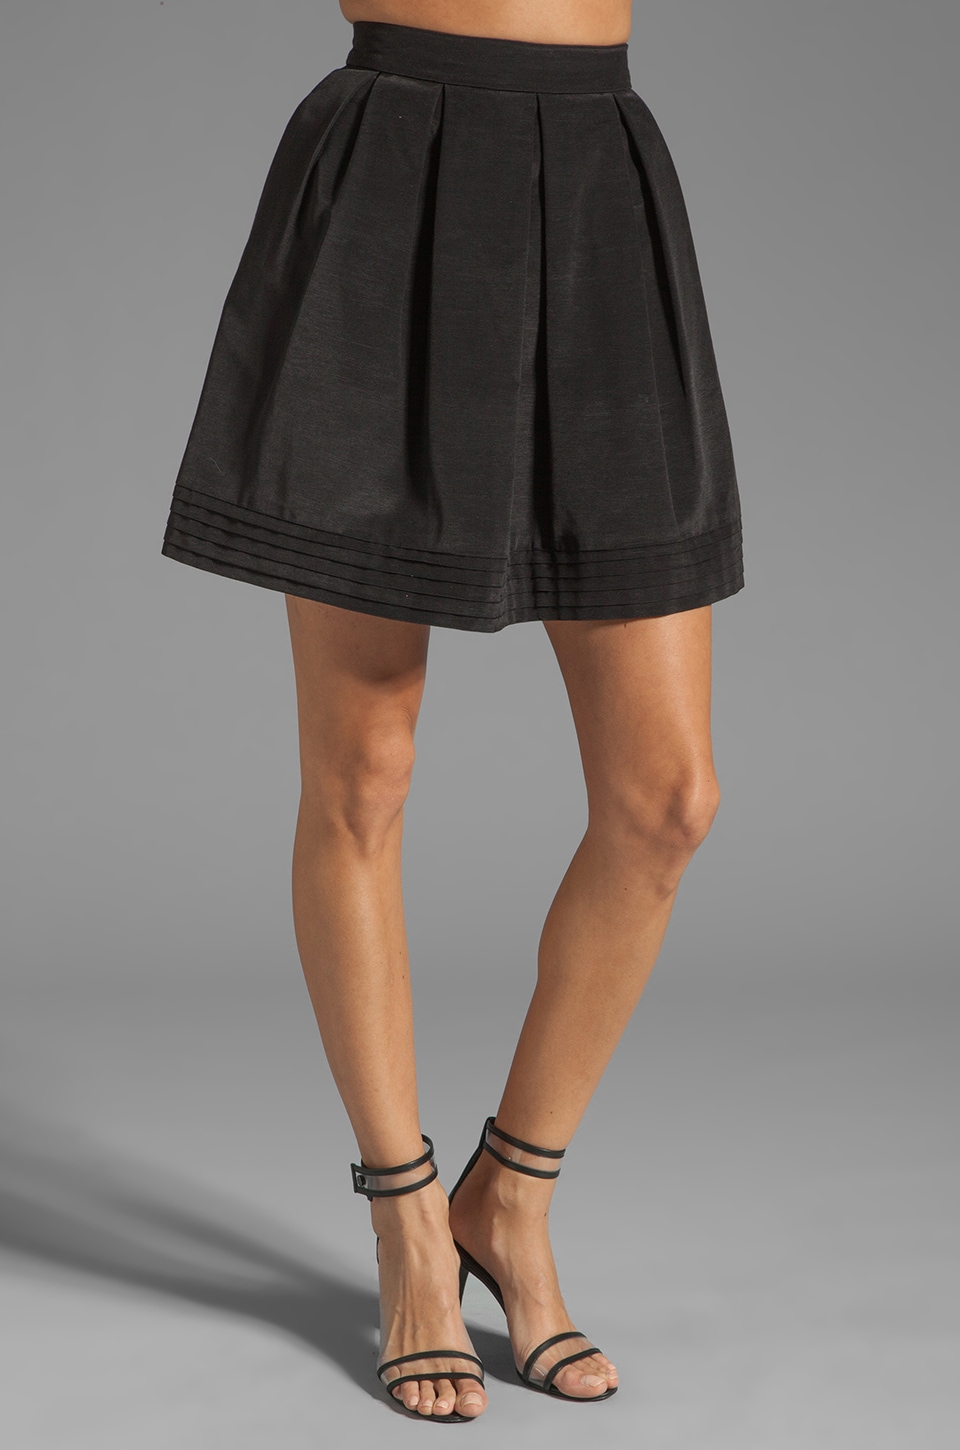 Shoshanna Bengaline Quinn Skirt in Black